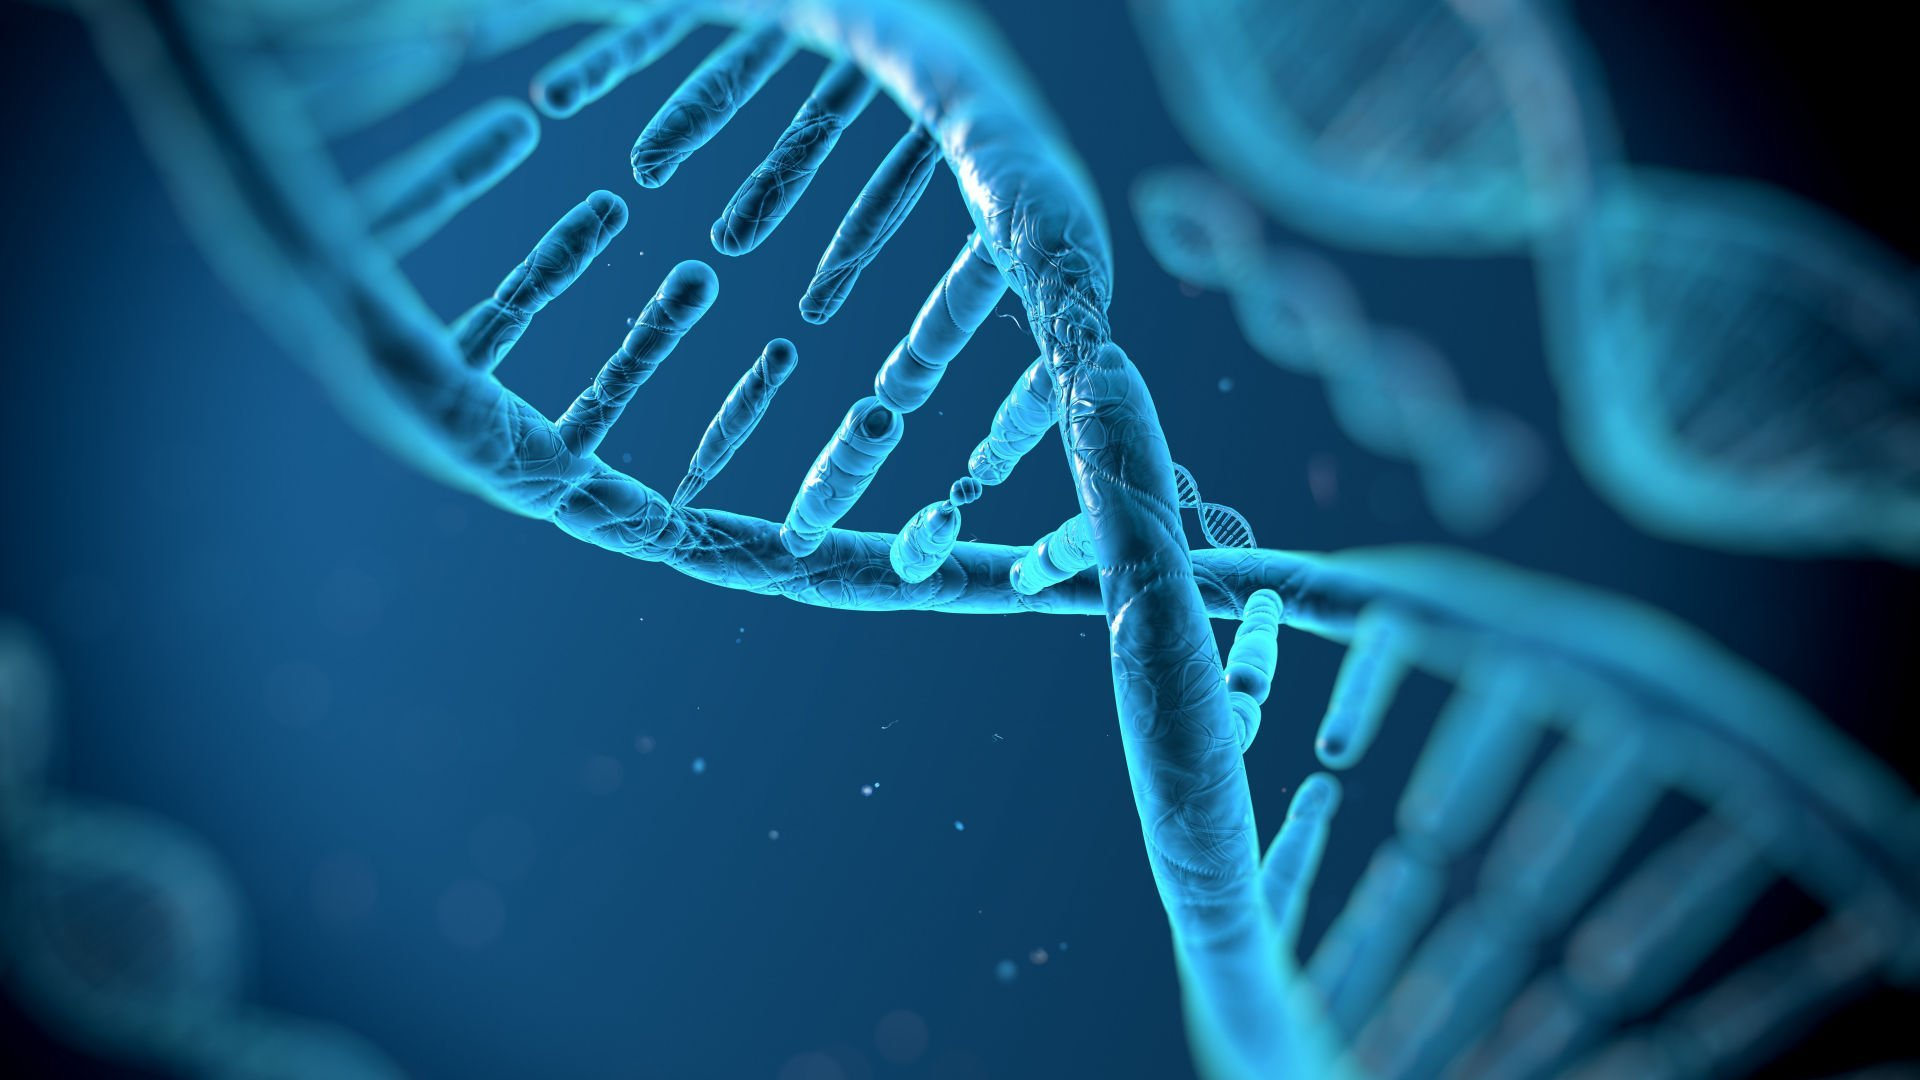 South Africa to Fight Crime with New DNA Law